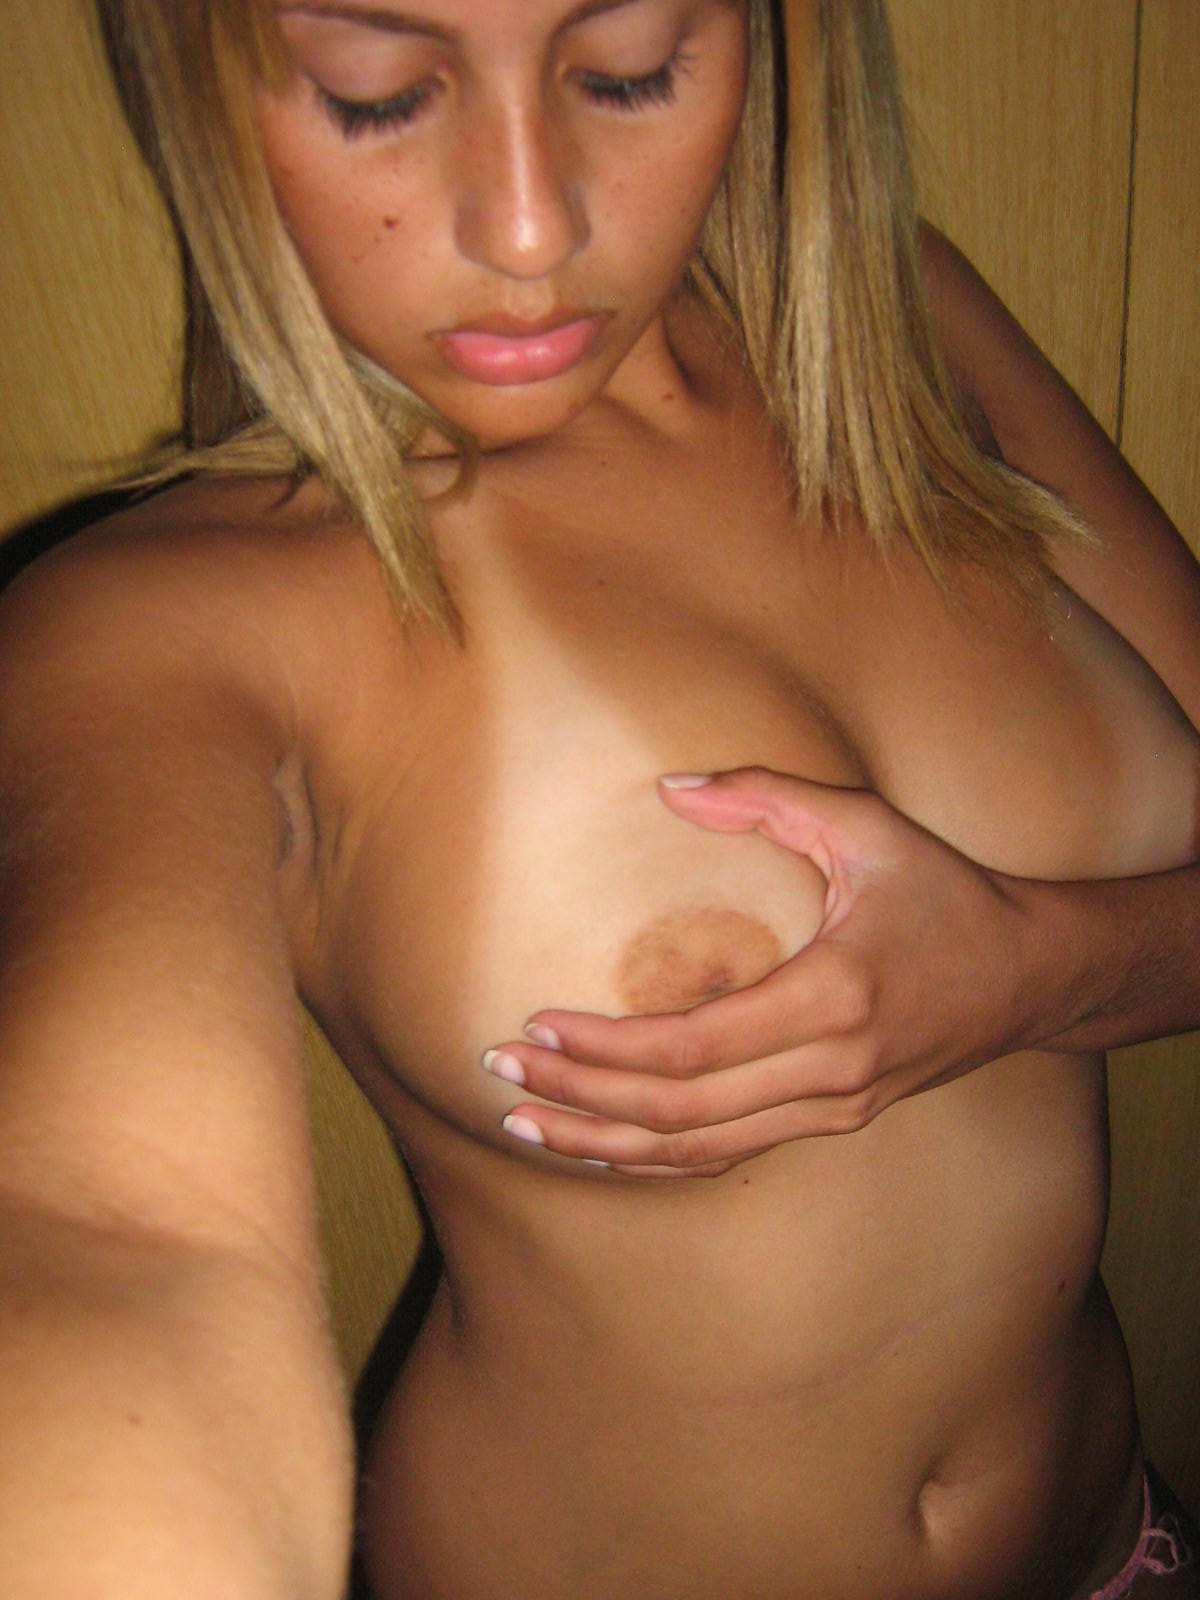 The hottest amateur porn